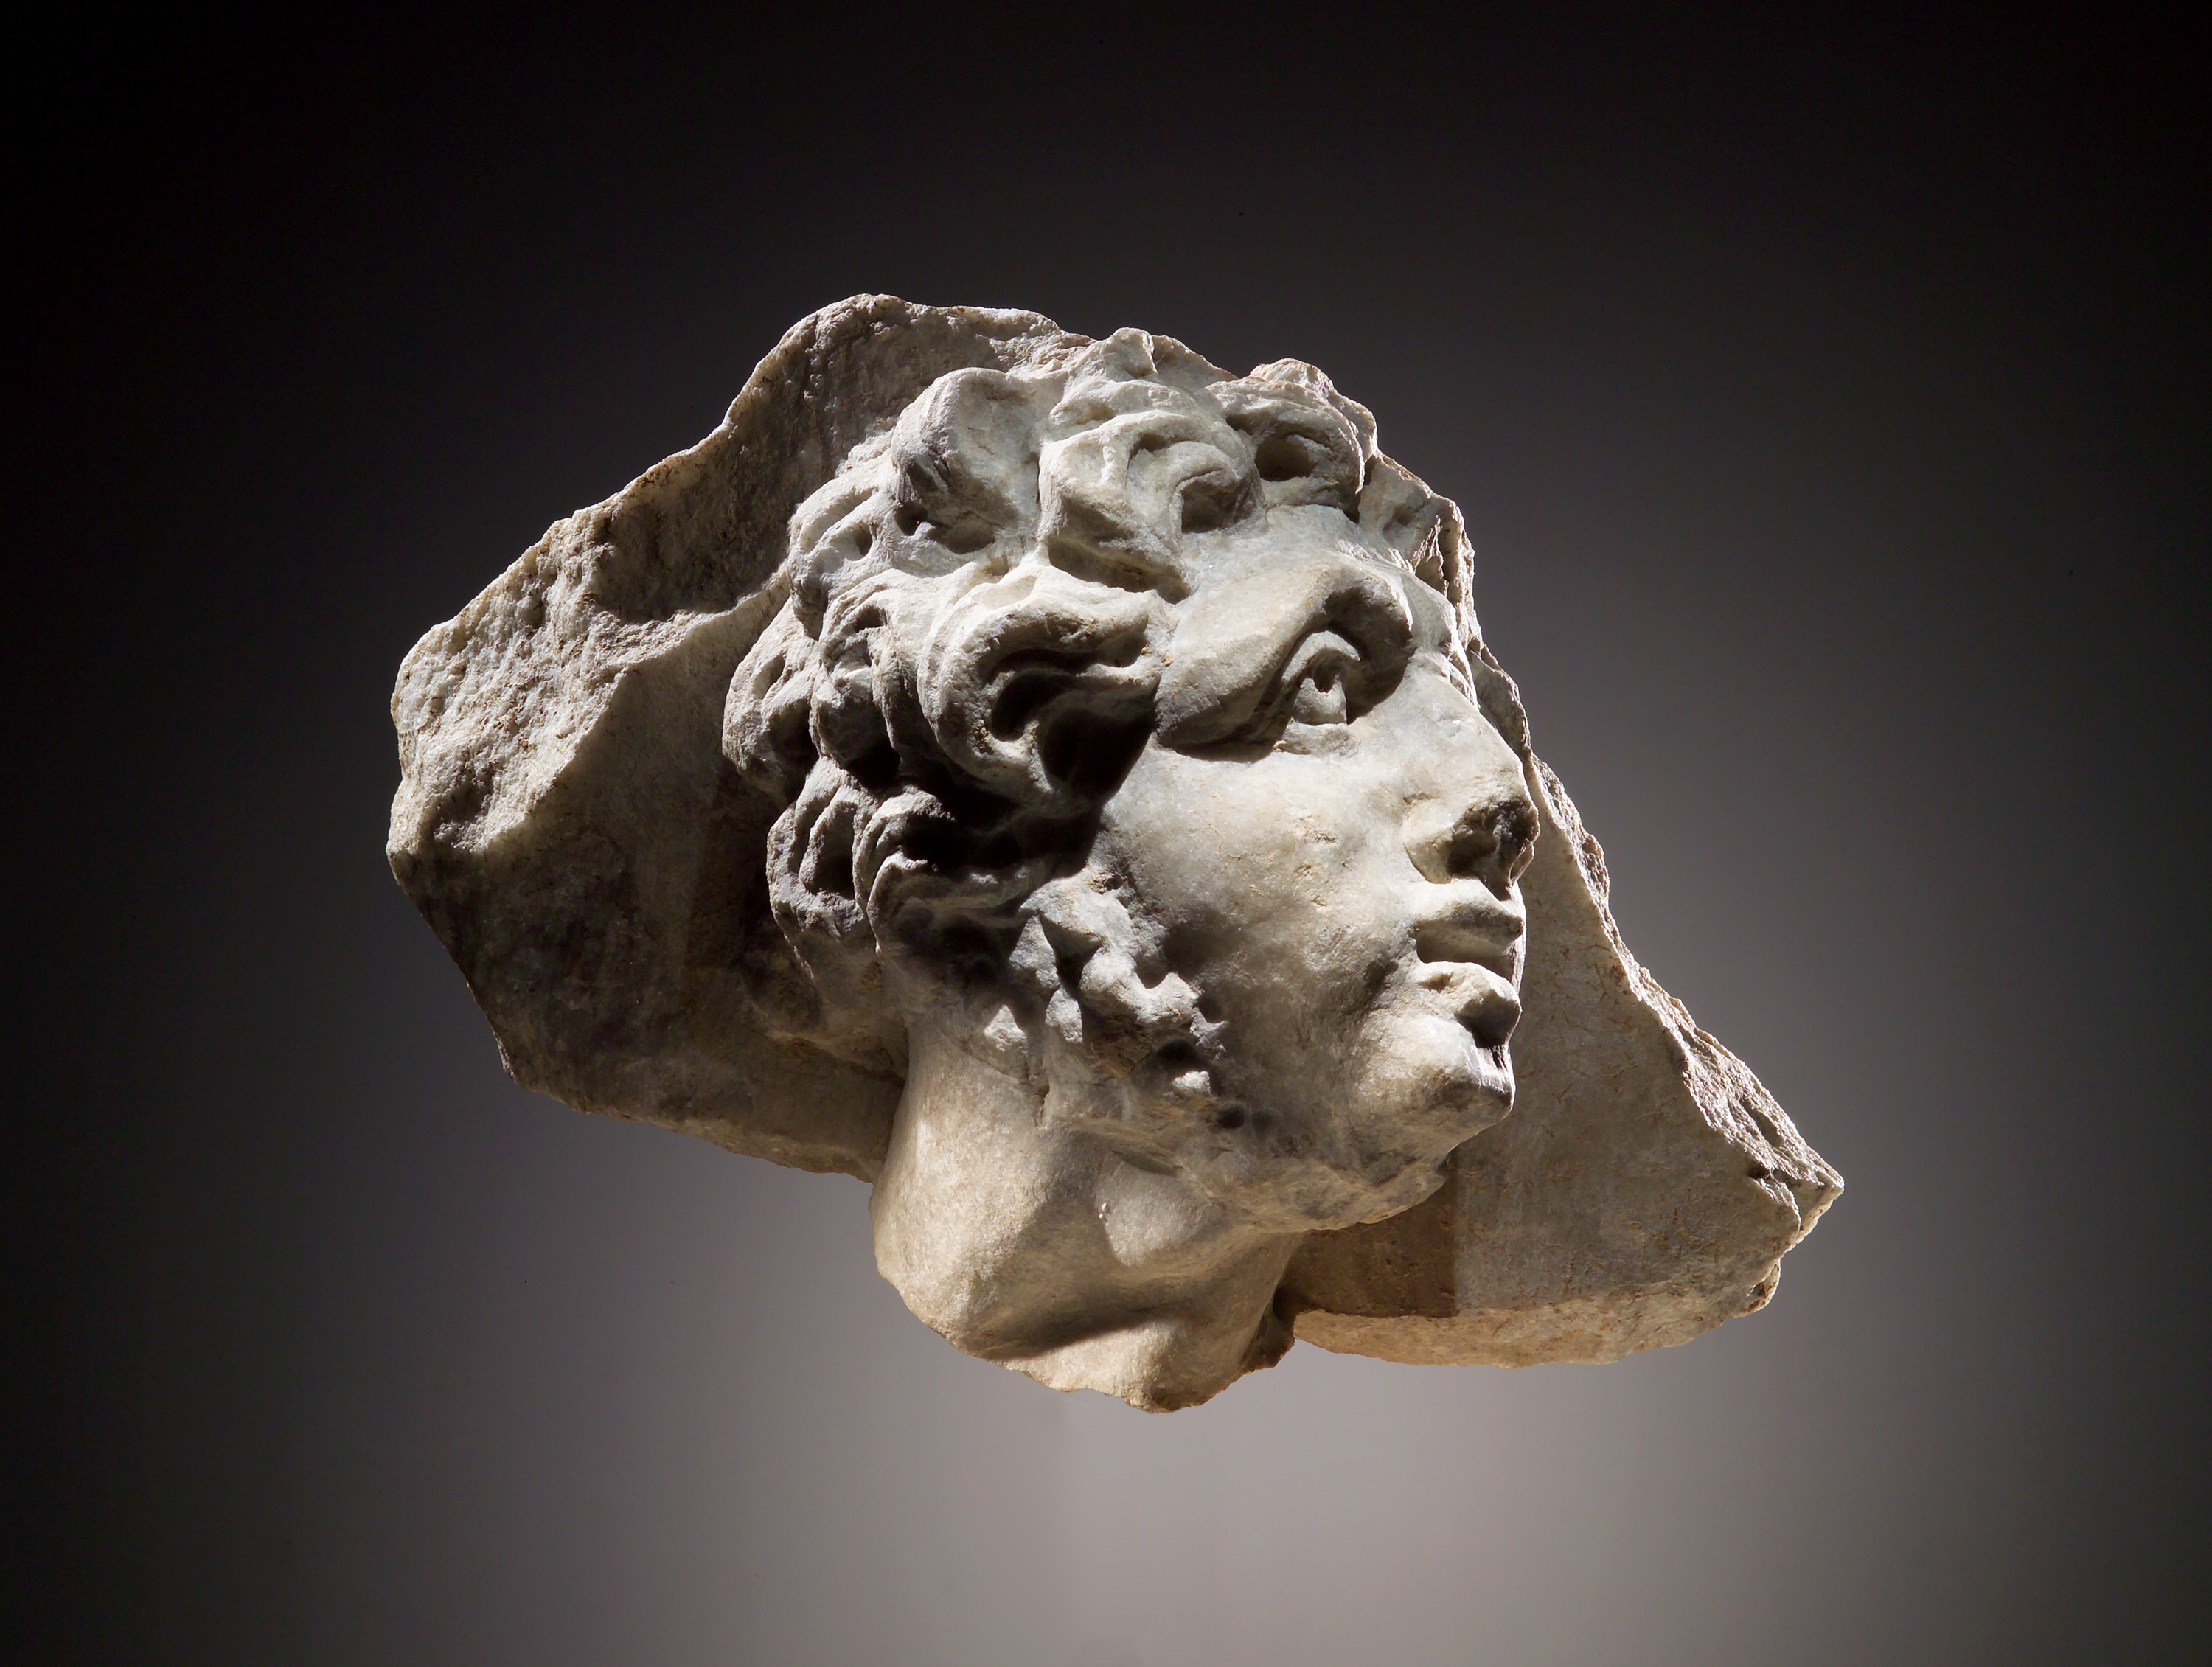 Lot 56 - A Head of a Man in Relief